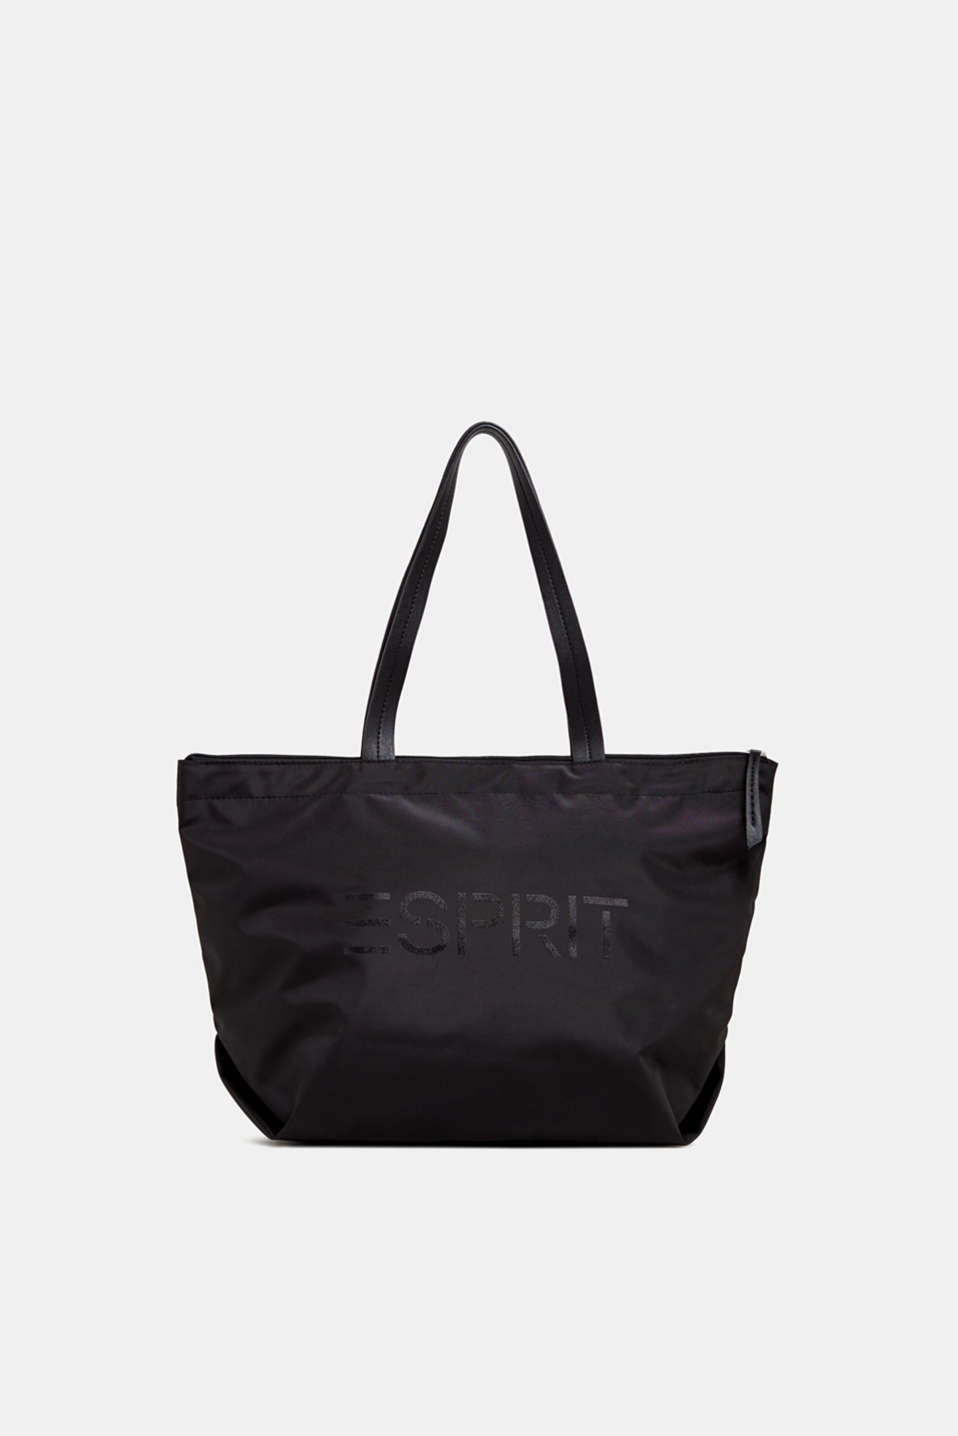 Esprit - Tote bag in nylon